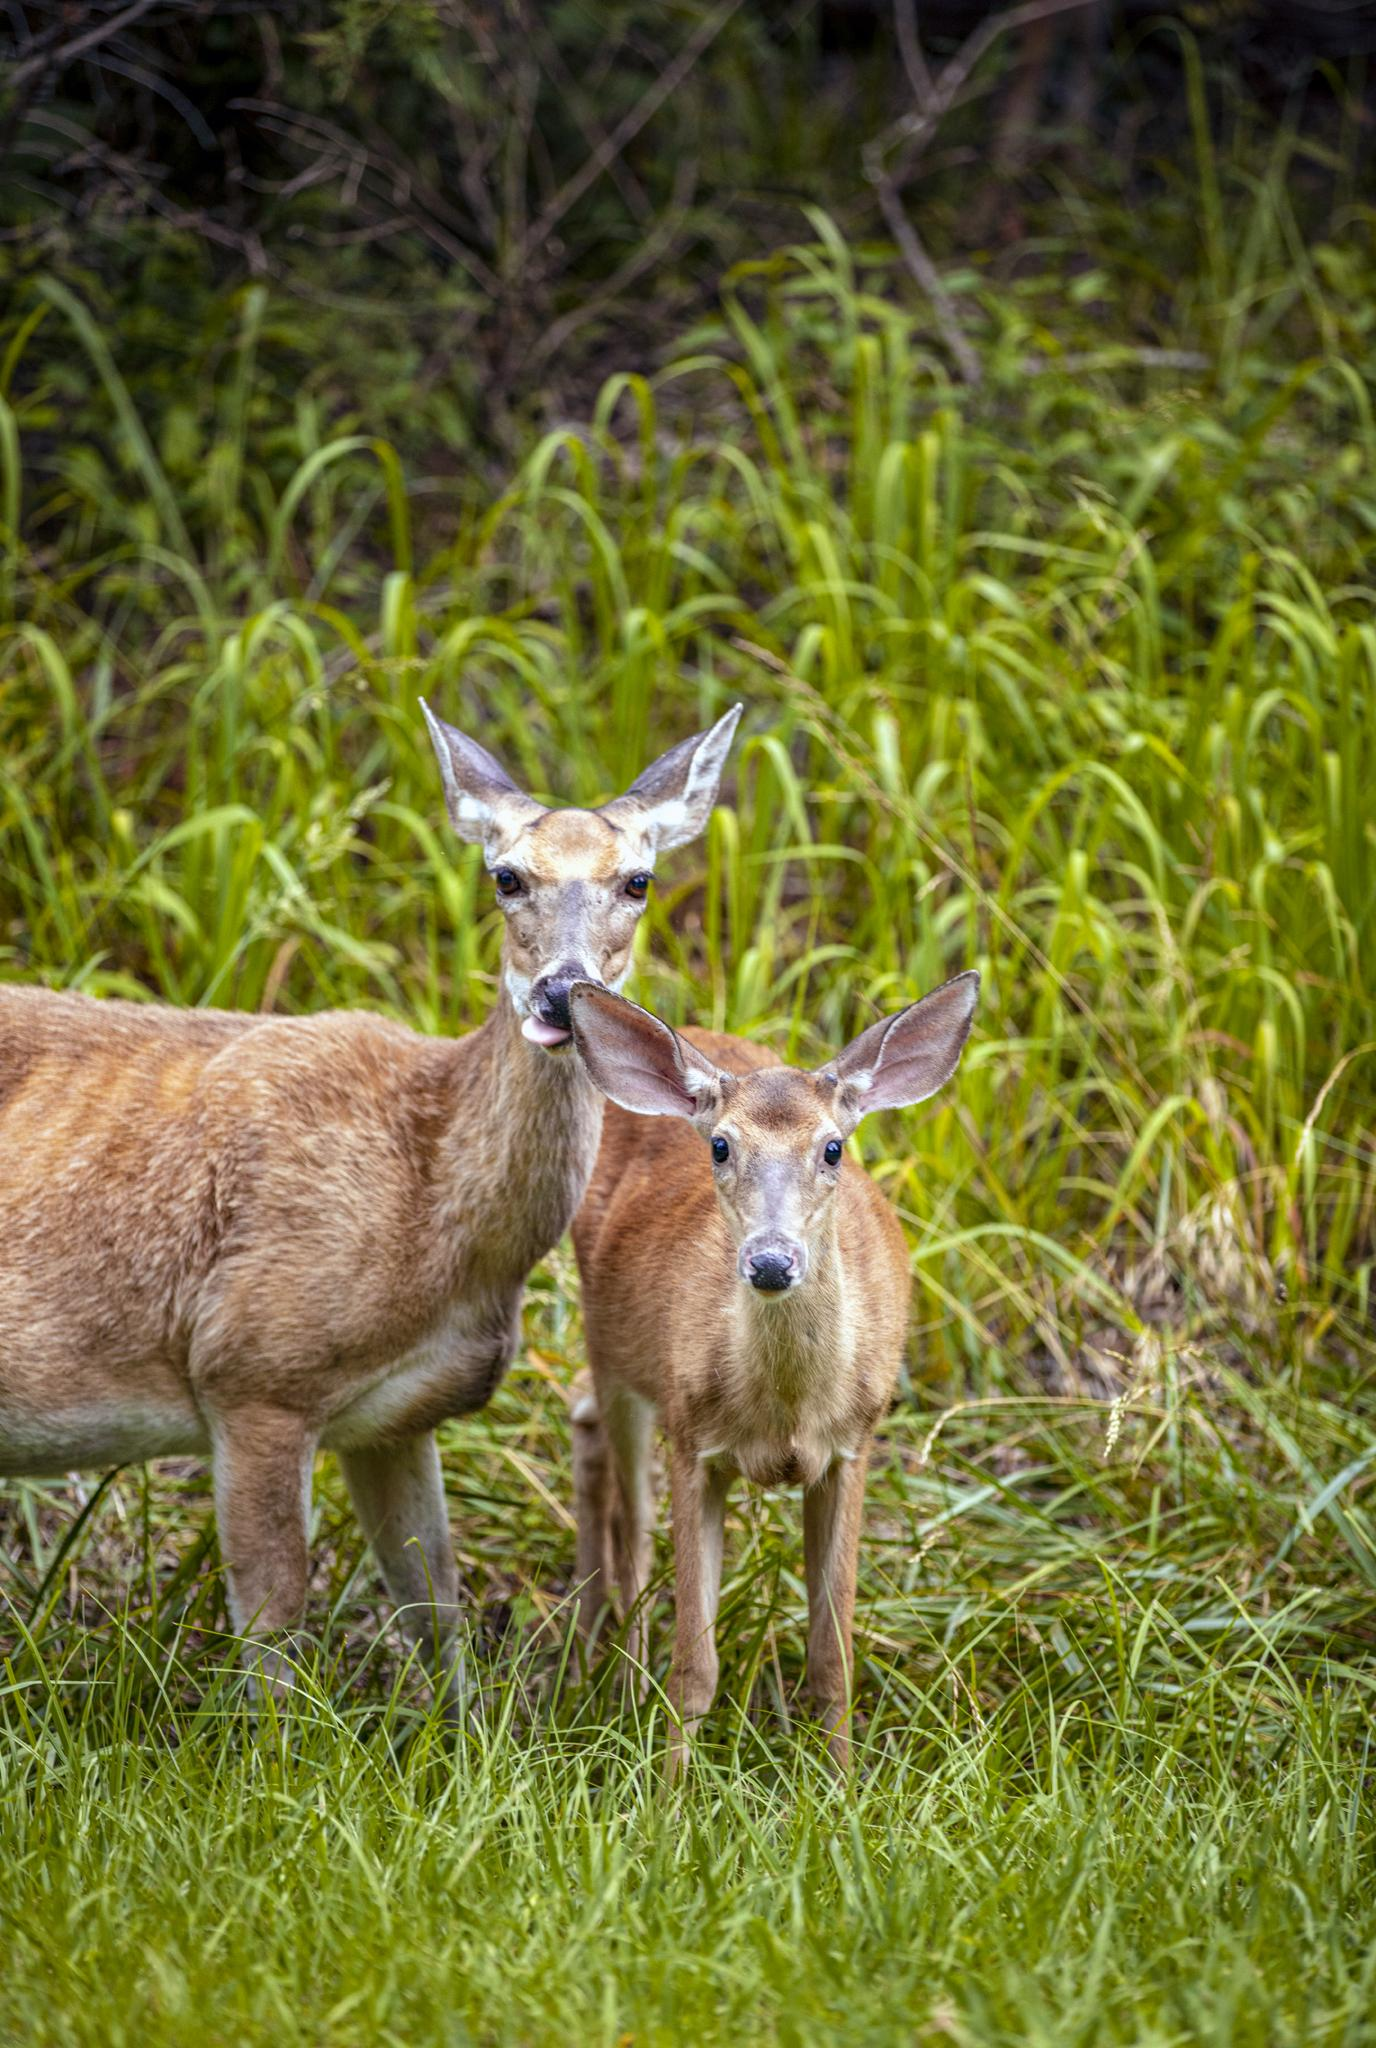 Deer and other wildlife roam freely throughout Lake Guntersville State Park providing daily entertainment for campers and hikers. – Scott Baker